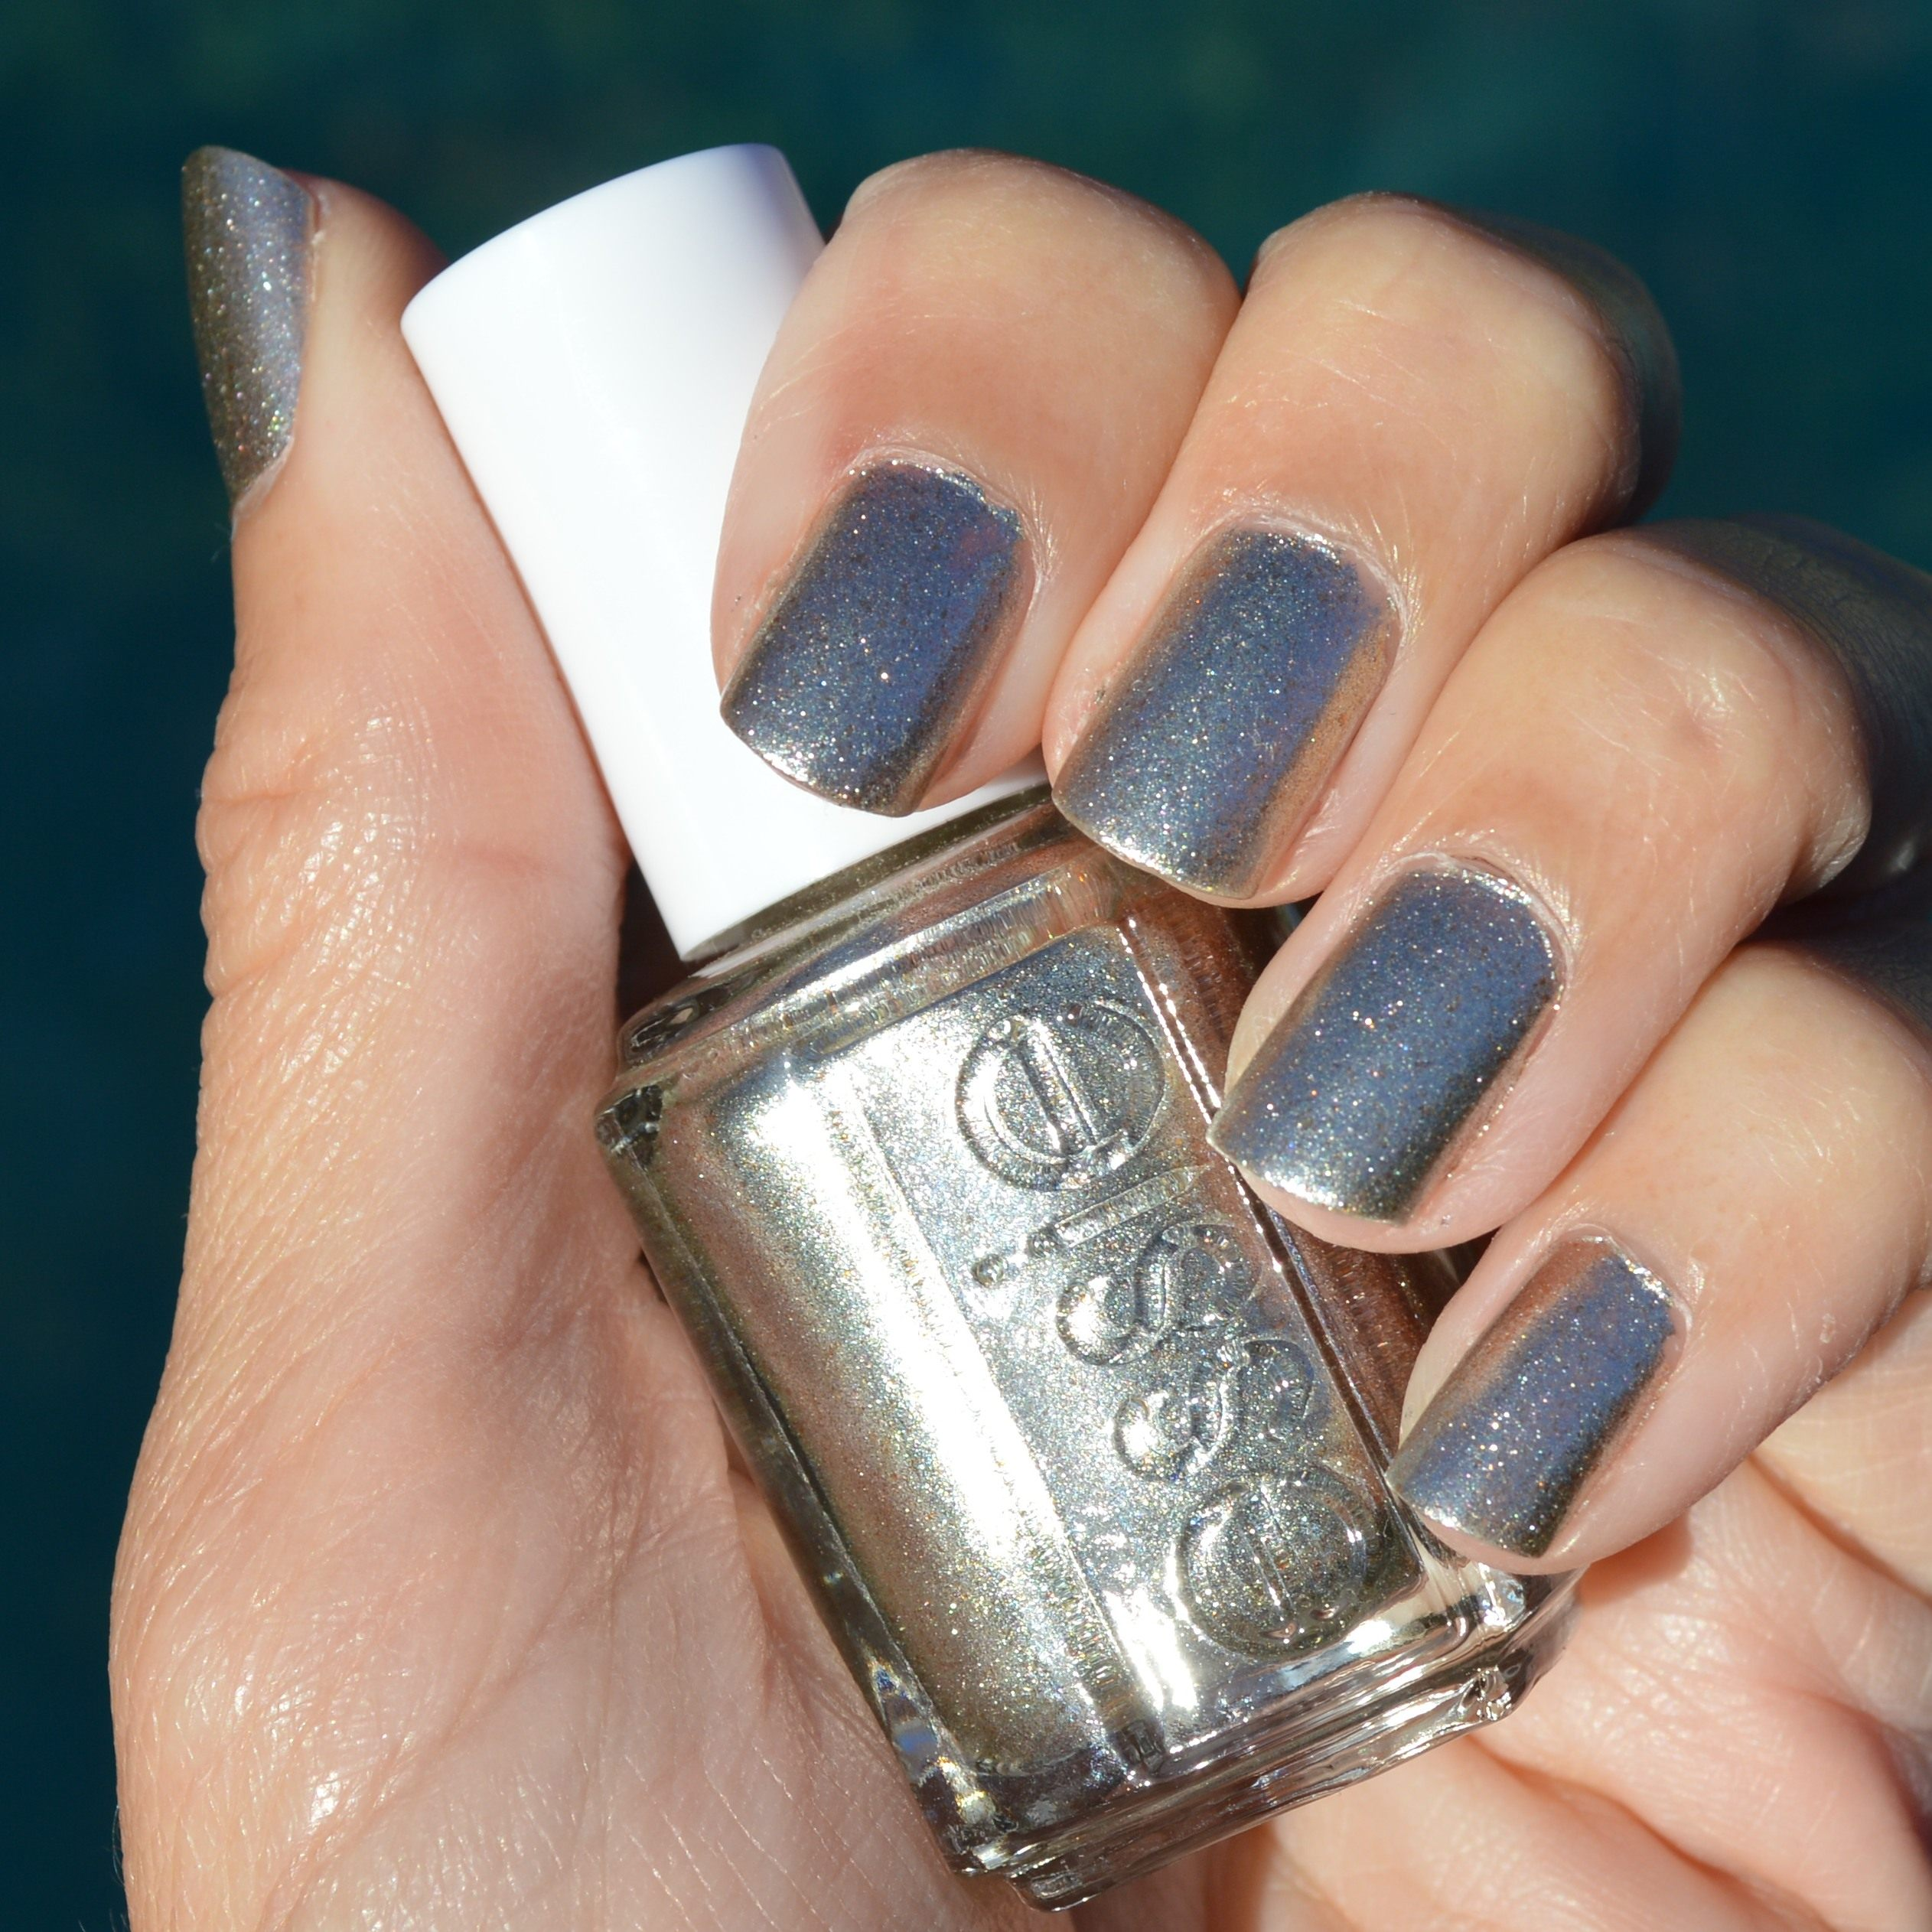 Winter Nail Polish Colors: Essie Jiggle Hi Jiggle Low Nail Polish From The Winter